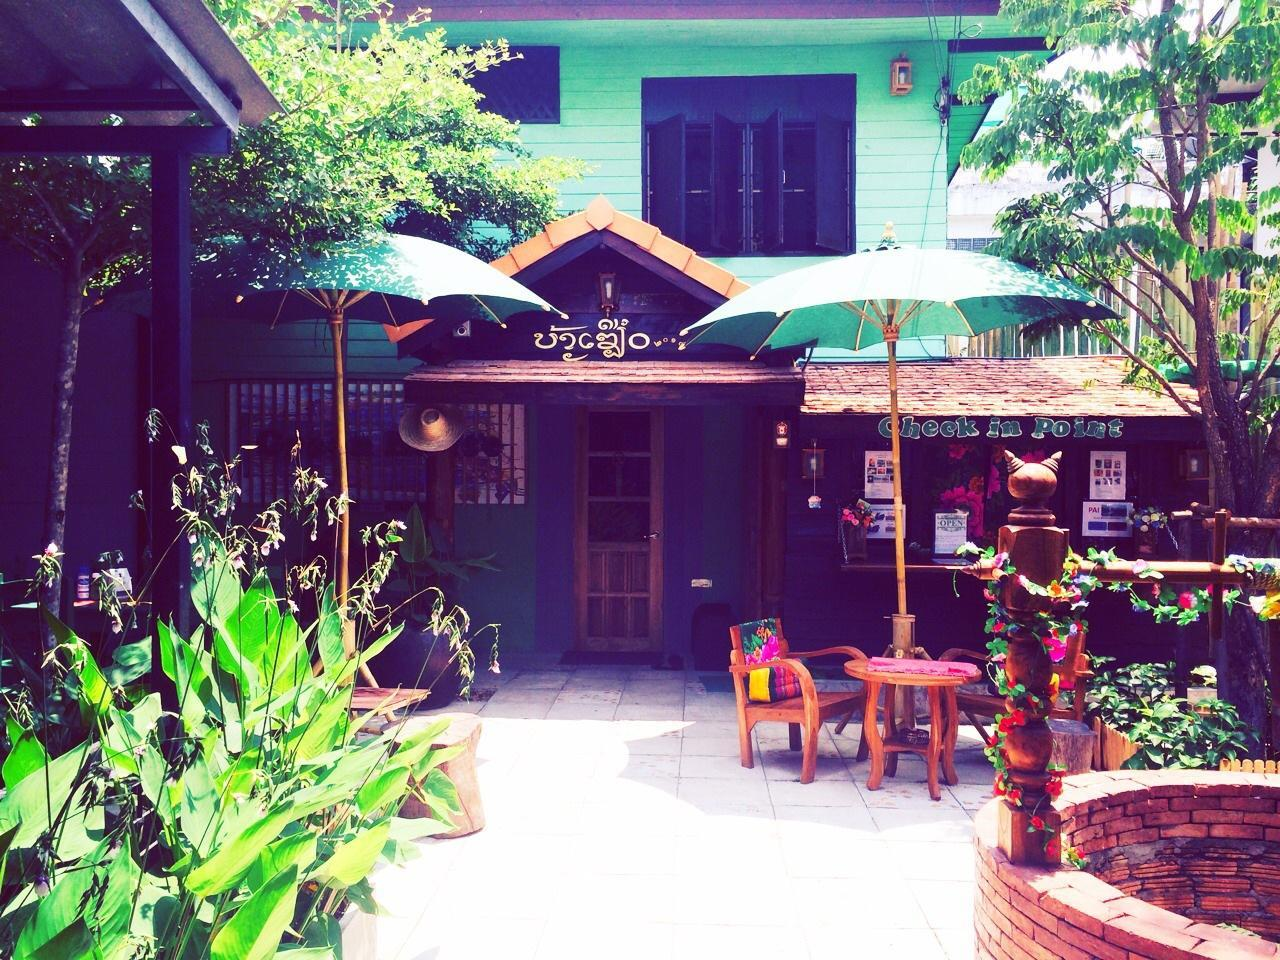 Green house backpacker old city chiang mai thailand for Classic house chiang mai